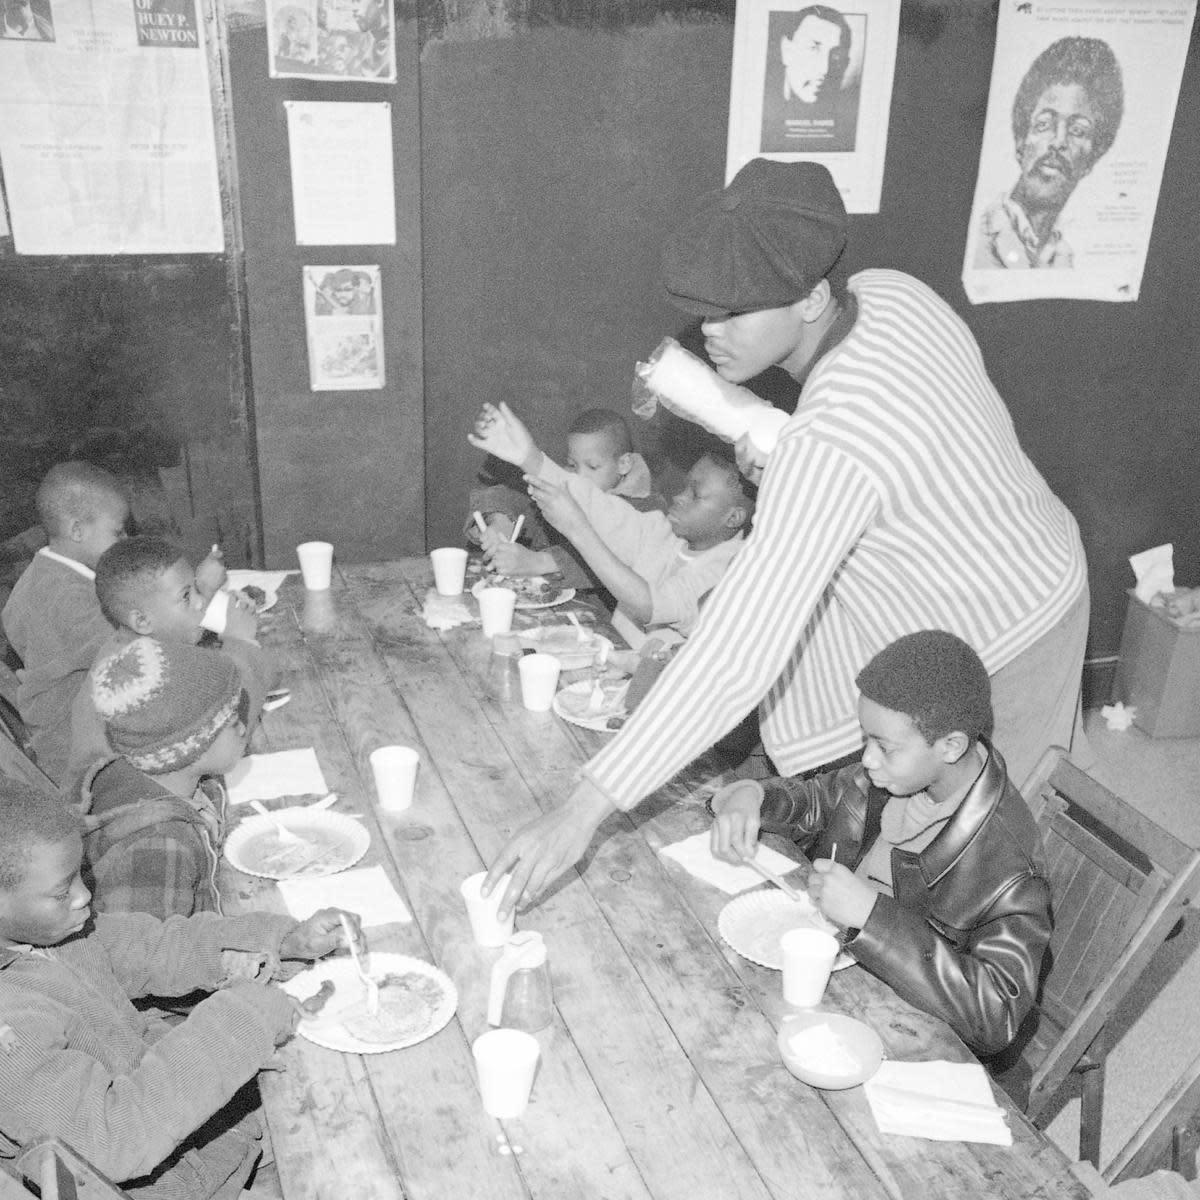 Brad Jones, member of the Philadelphia Black Panthers Organization, helping serve breakfast to youngsters. (Credit: Bill Ingraham/AP Photo)